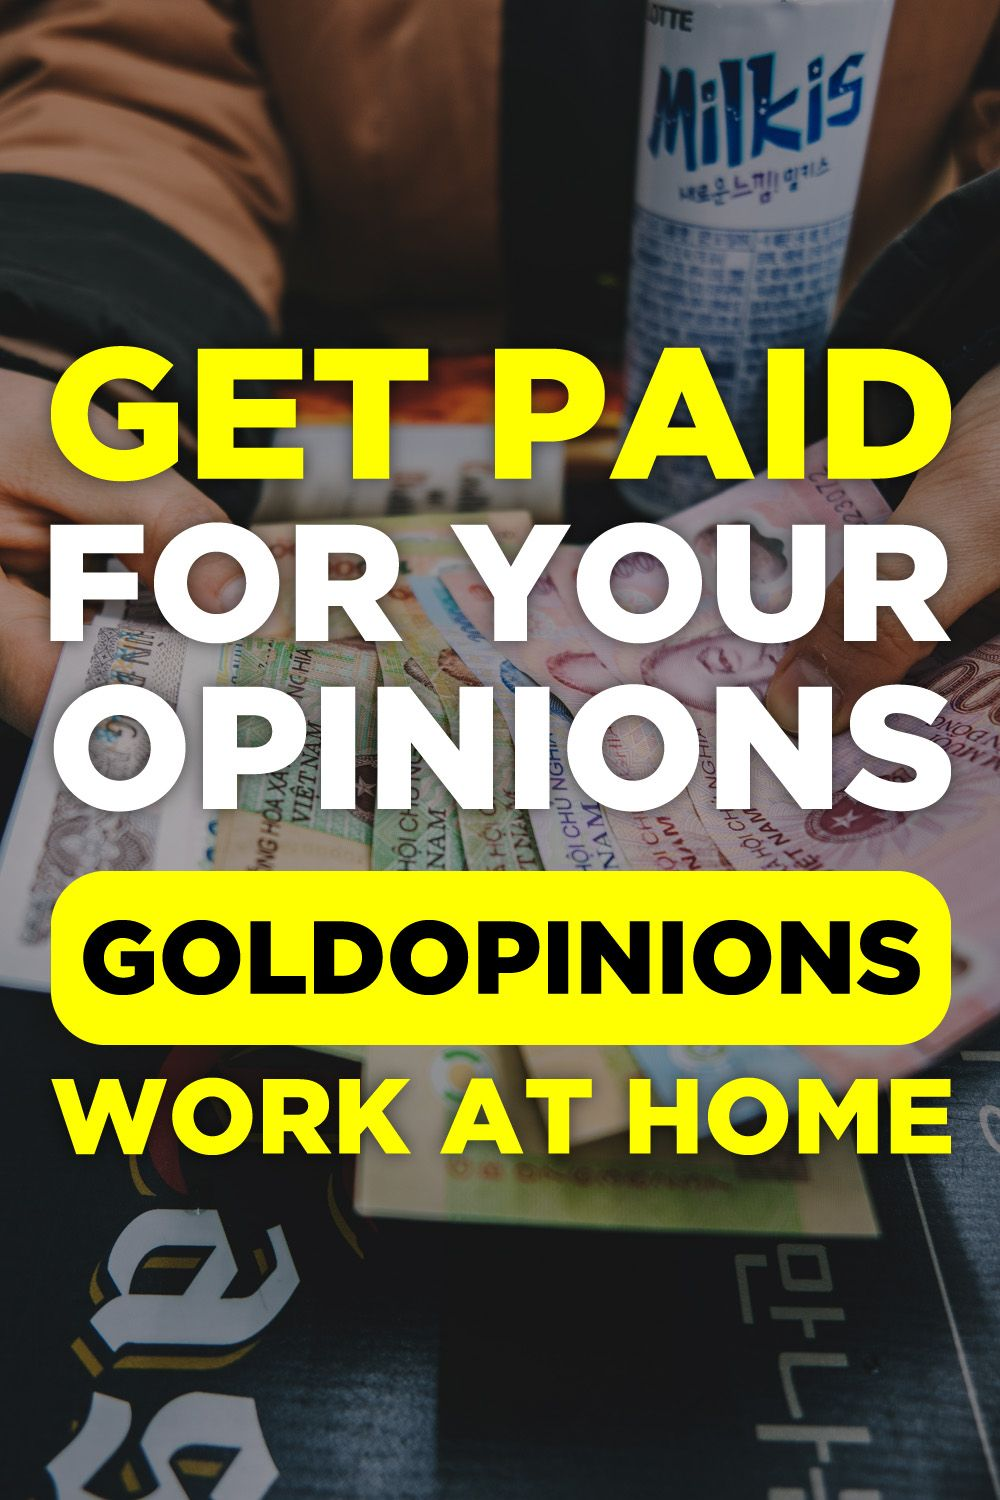 Earn 5 for 10 Minute Survey, GoldOpinions Online